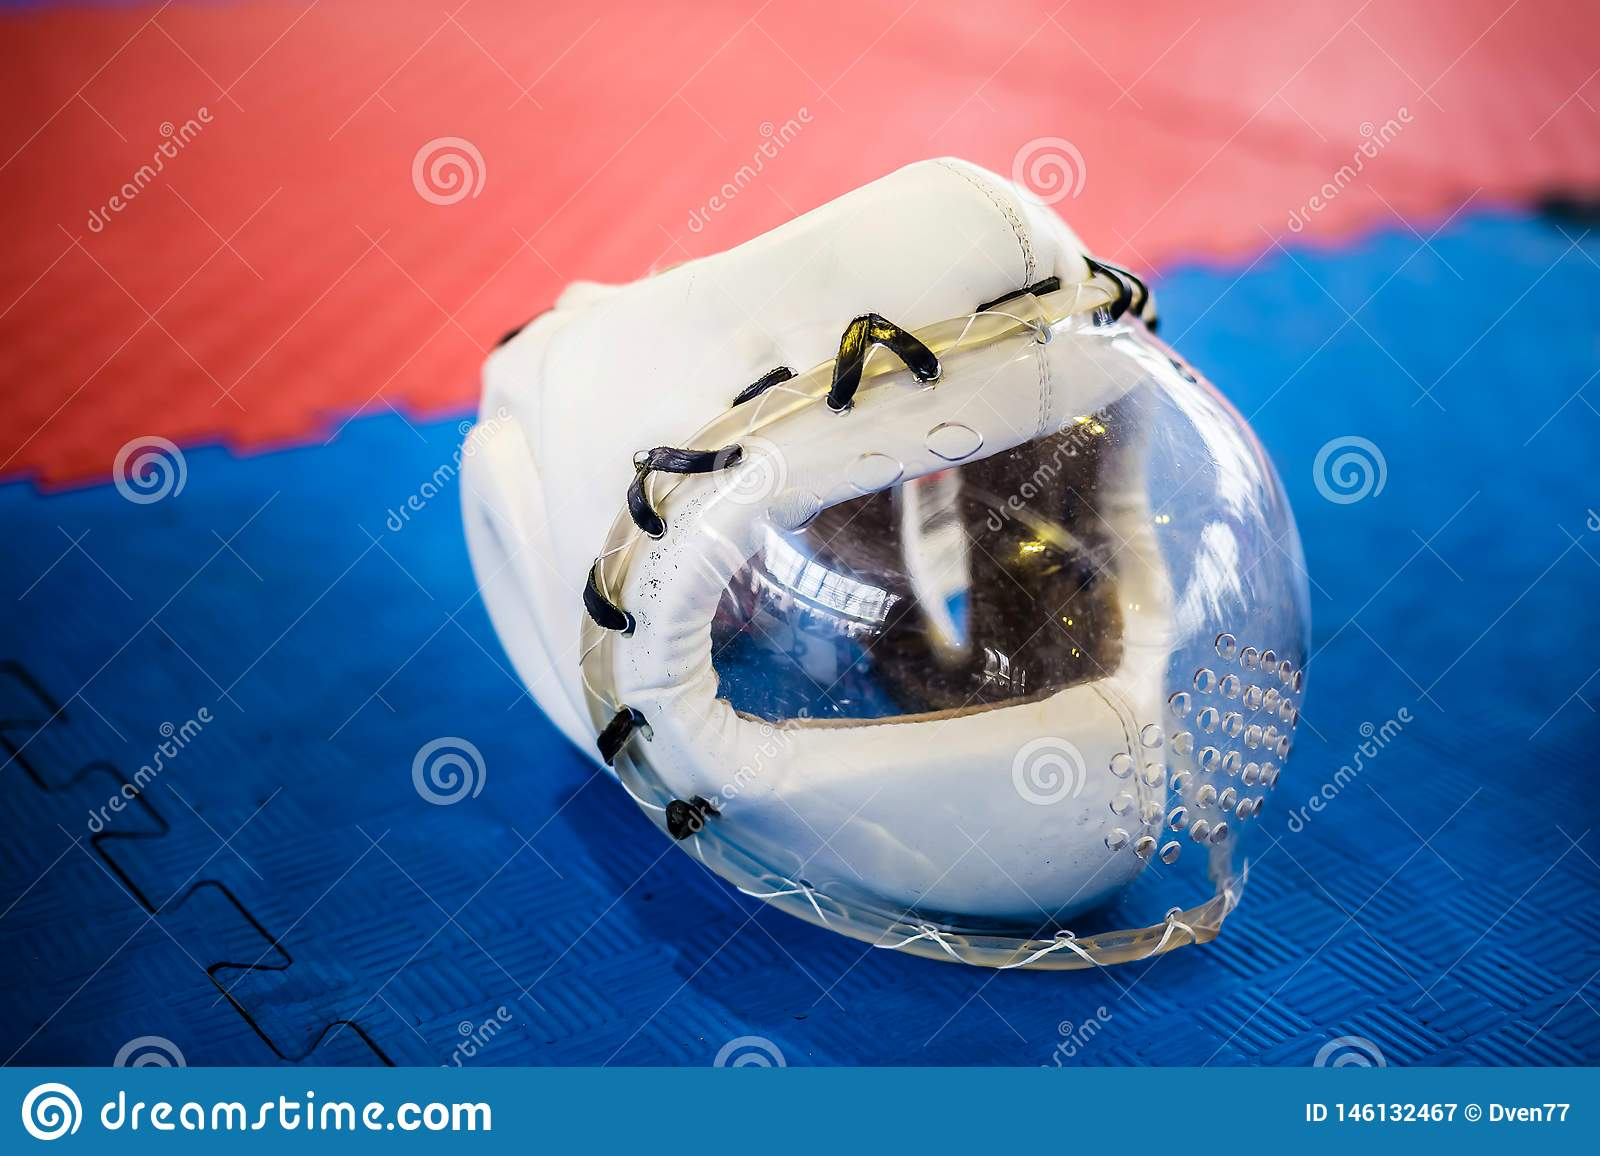 White protective helmets with clear plactic mask for martial arts on the red blue floor